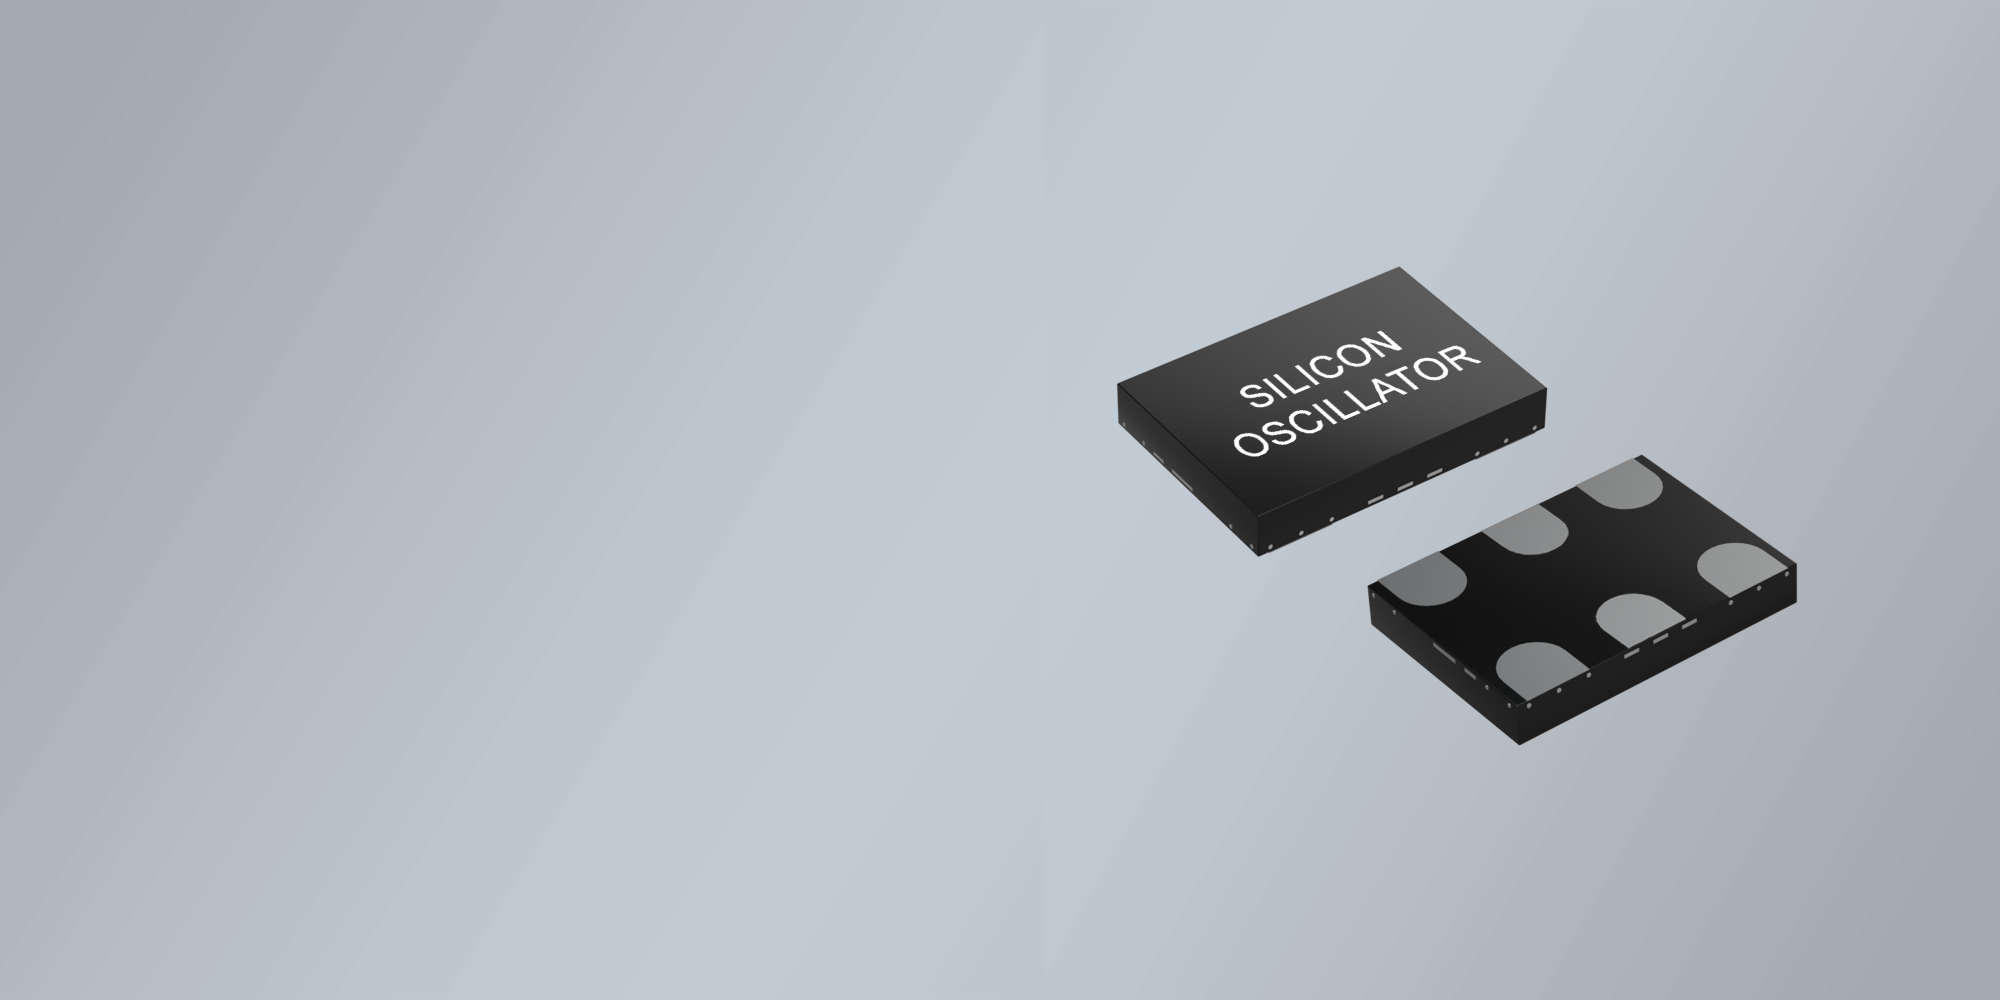 SMD DIFFERENTIAL 1 - 220 MHz SILICON OSCILLATORS